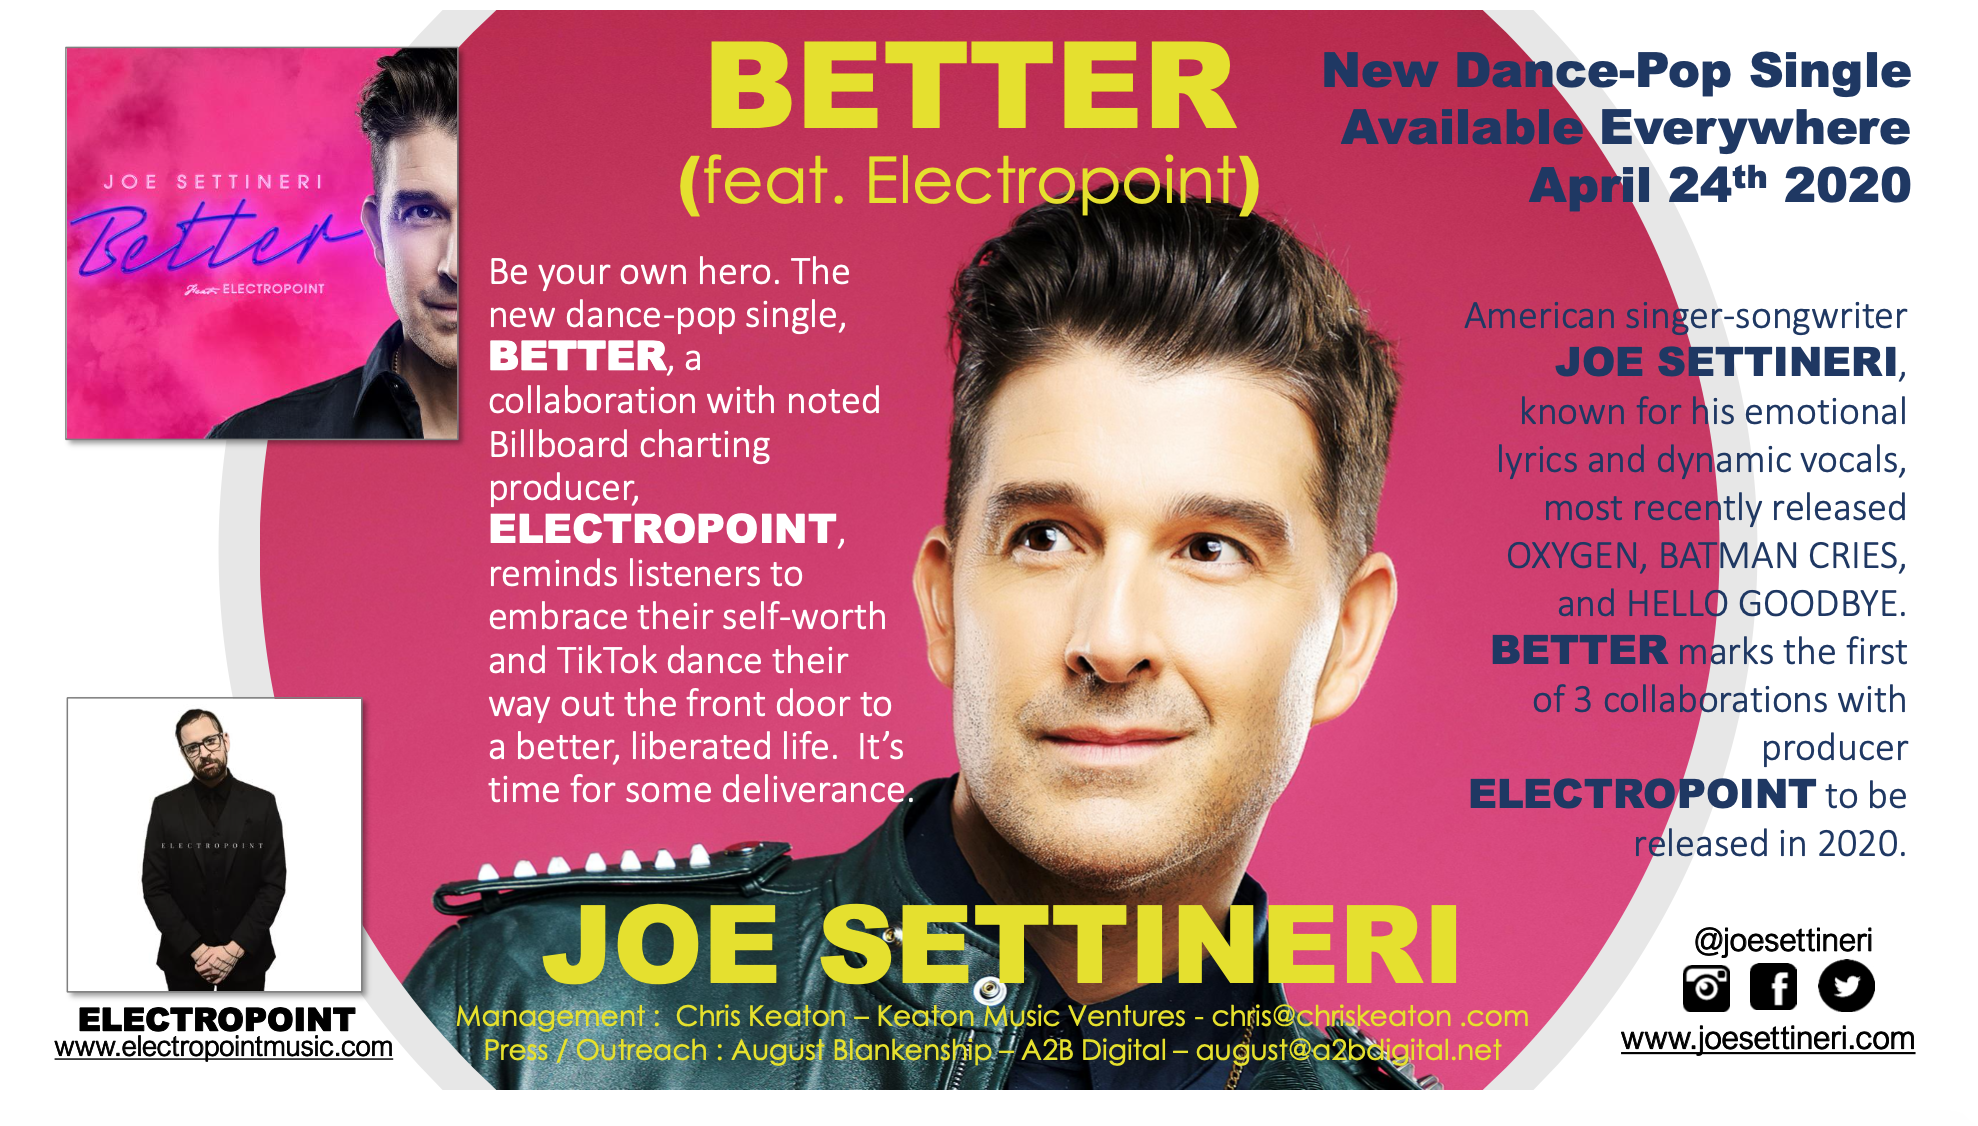 Better: Joe Settineri